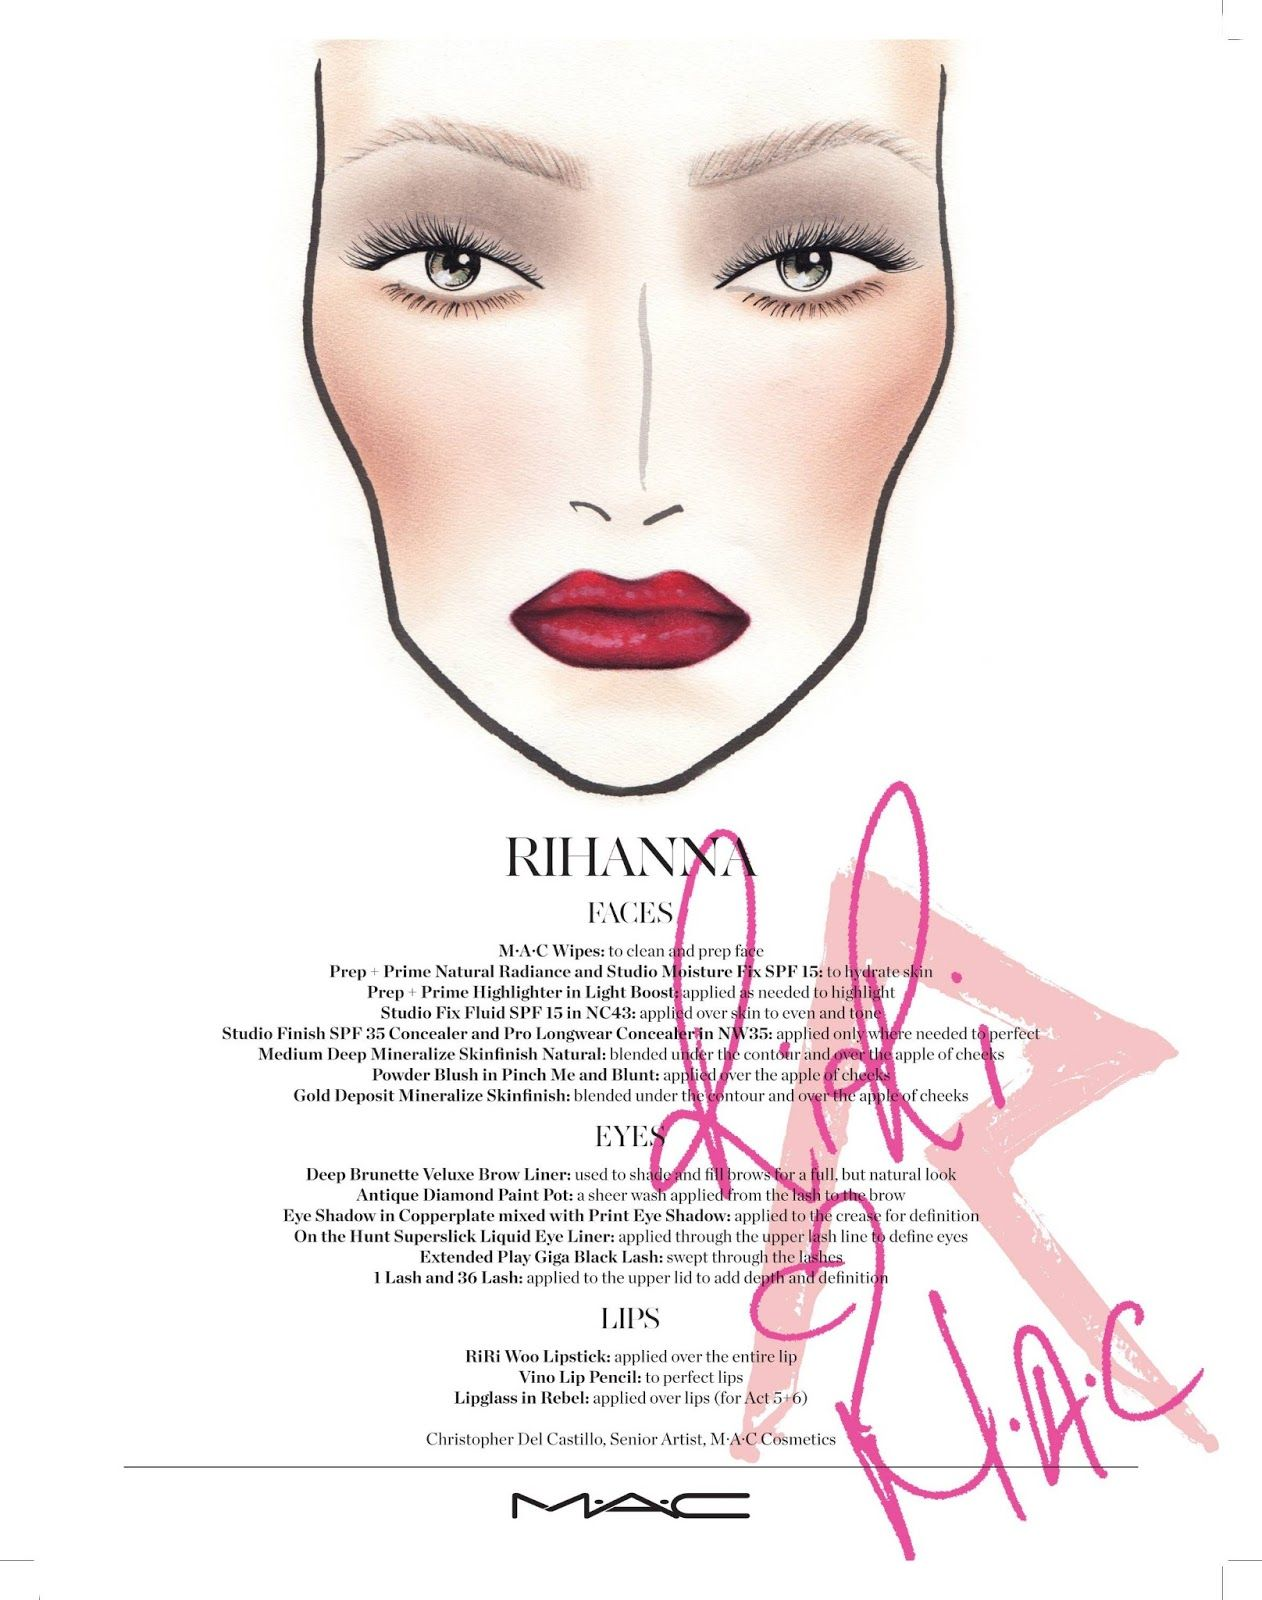 How to look like rihanna mac rihanna face chart xoxo emmy the official face chart for mac viva glam rihanna is here take a look on how to replicate rihannas viva glam look with the tutorial baditri Gallery